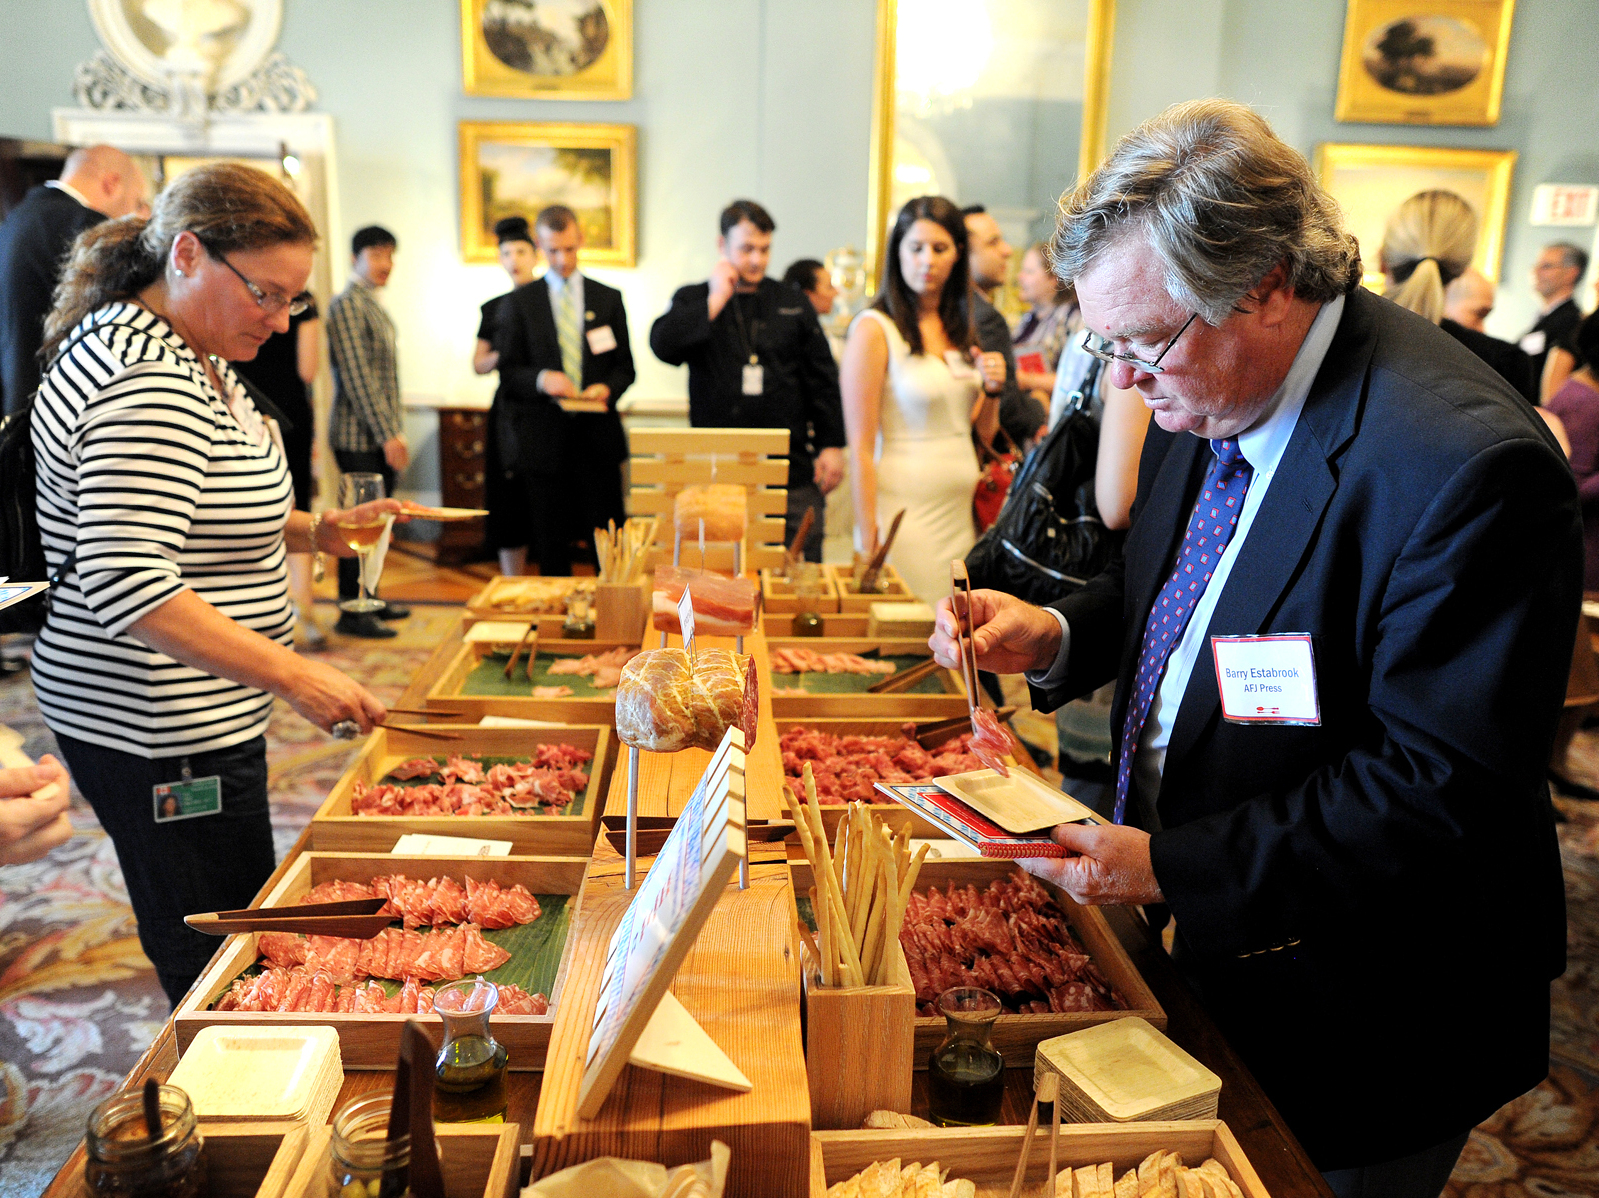 Participants of the Diplomatic Culinary Partnership try different foods at the State Department in Washington during a gathering of the American Chef Corps, a network of chefs from across the U.S. Photo: Jewel Samad/AFP/Getty Images